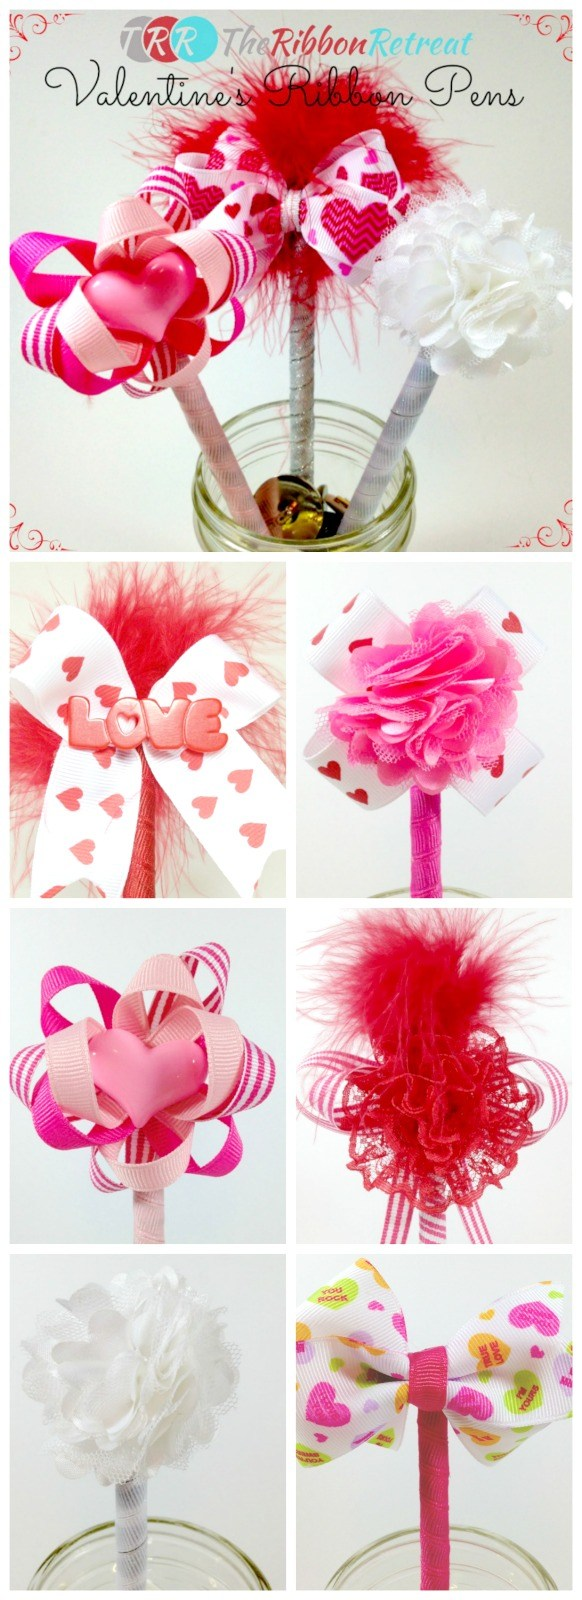 Valentine's Ribbon Pens - The Ribbon Retreat Blog